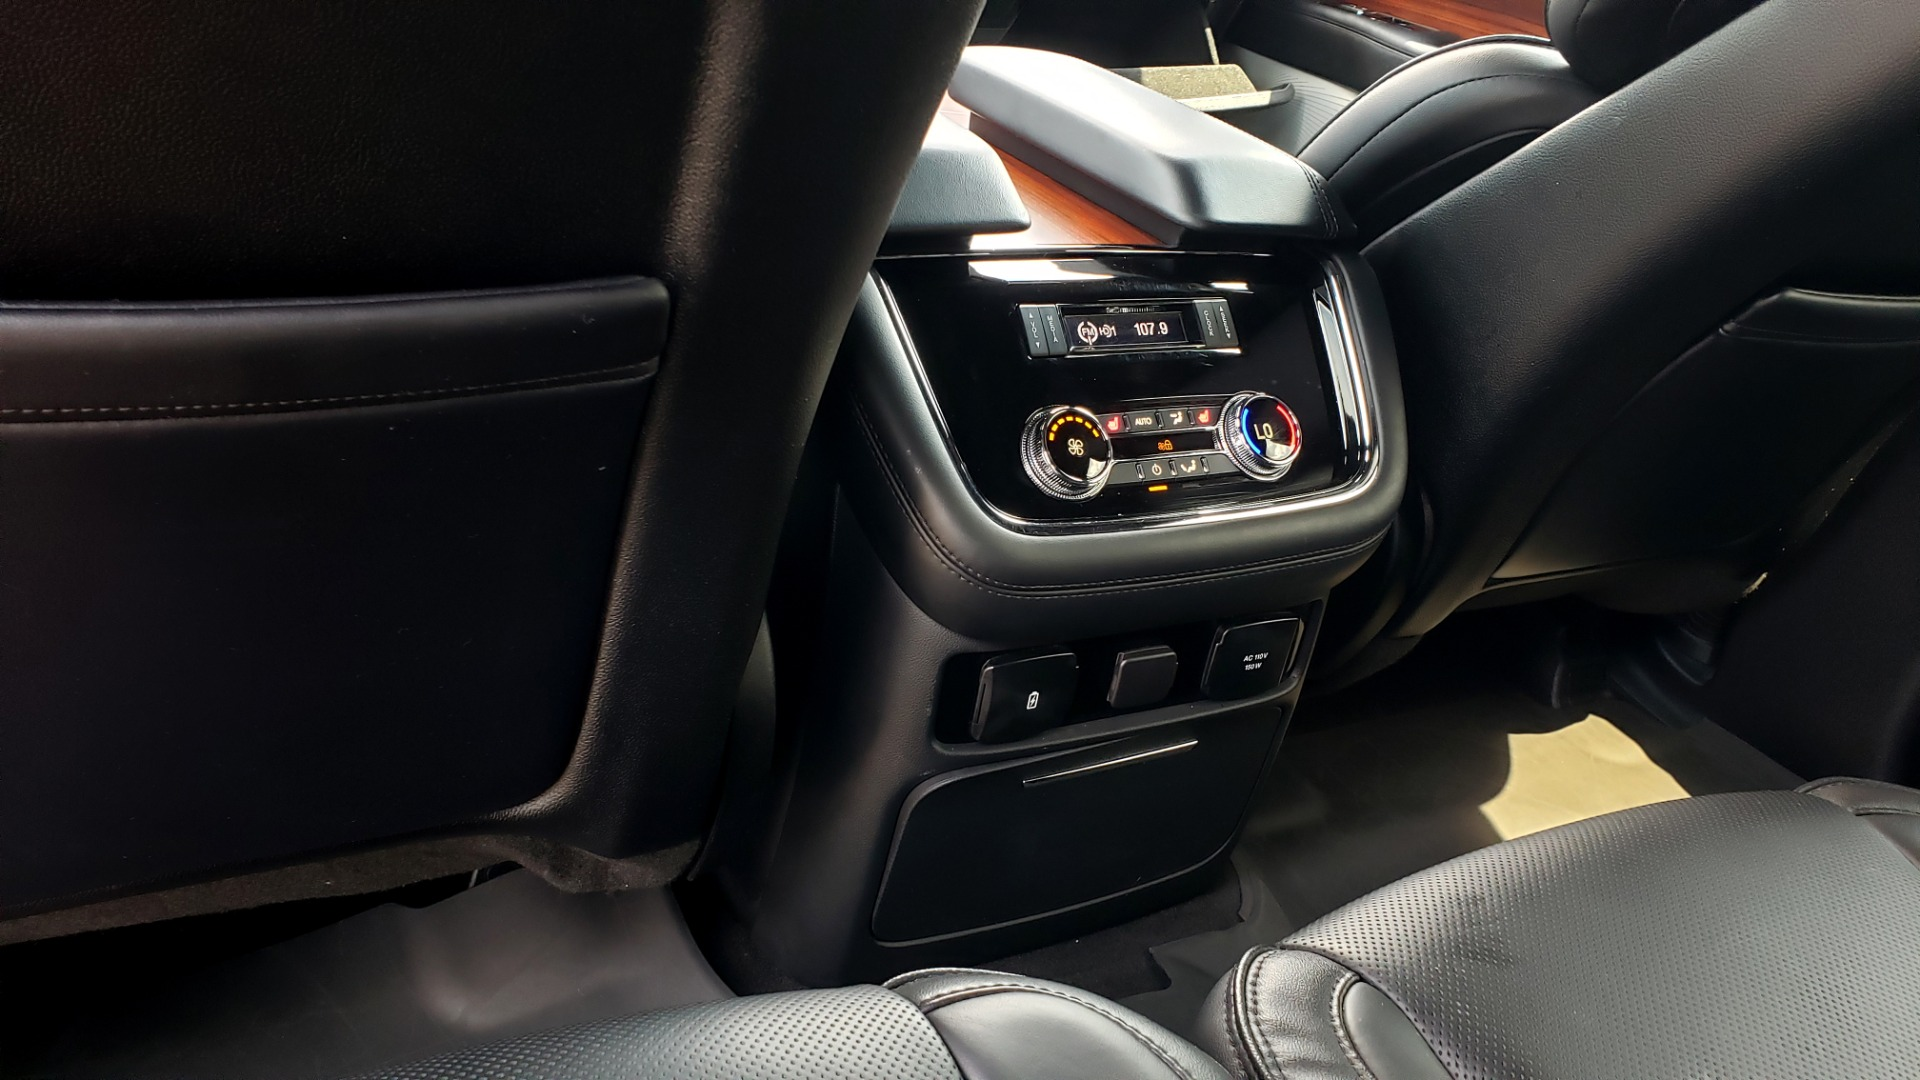 Used 2019 Lincoln NAVIGATOR RESERVE 4X4 / NAV / PANO-ROOF / REVEL ULTIMA AUDIO / 3-ROW / REARVIEW for sale $74,795 at Formula Imports in Charlotte NC 28227 71